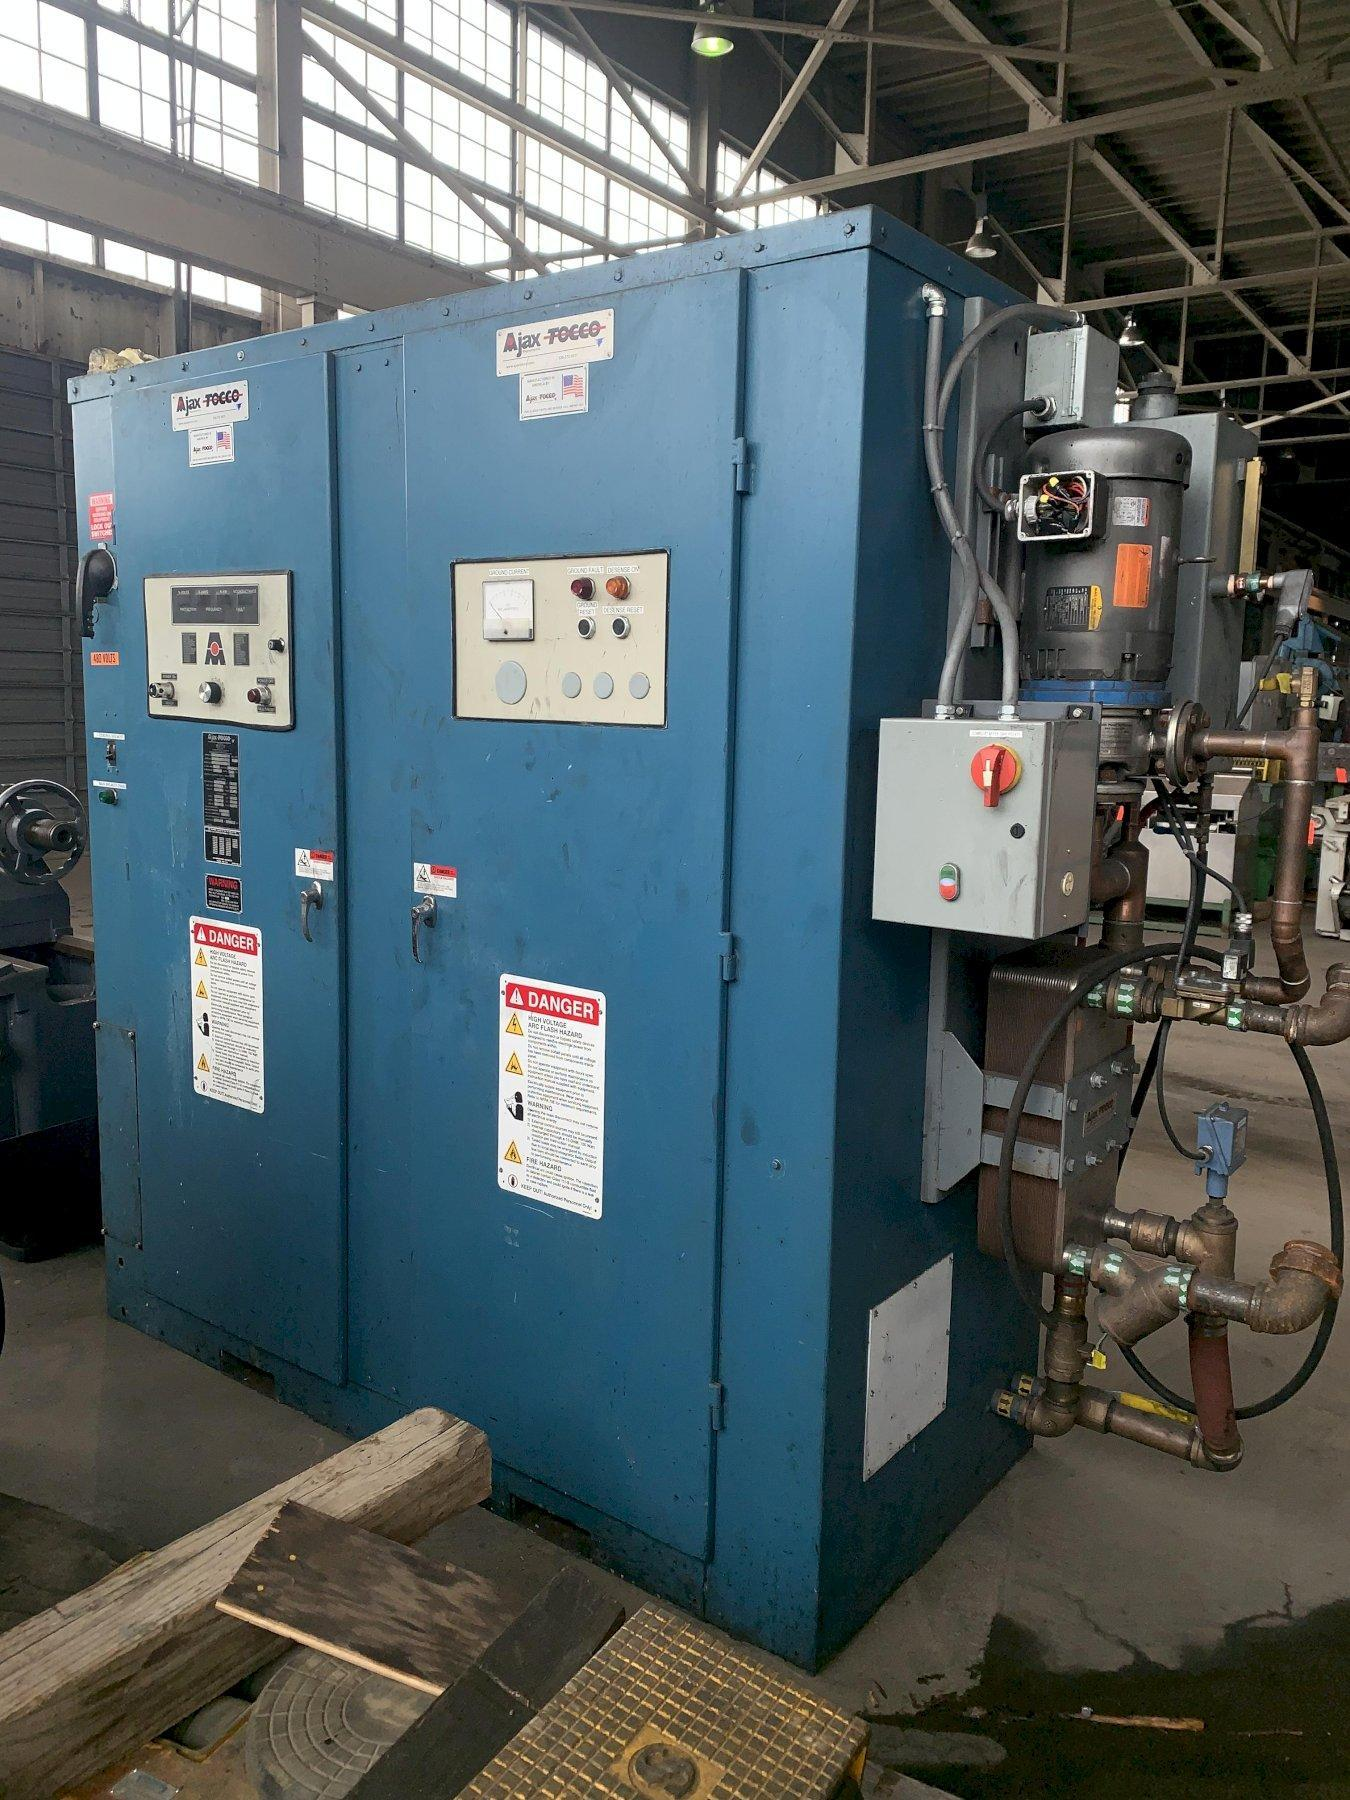 500 KW AJAX TOCCO PACER 1 BILLET INDUCTION HEATER: STOCK #14409